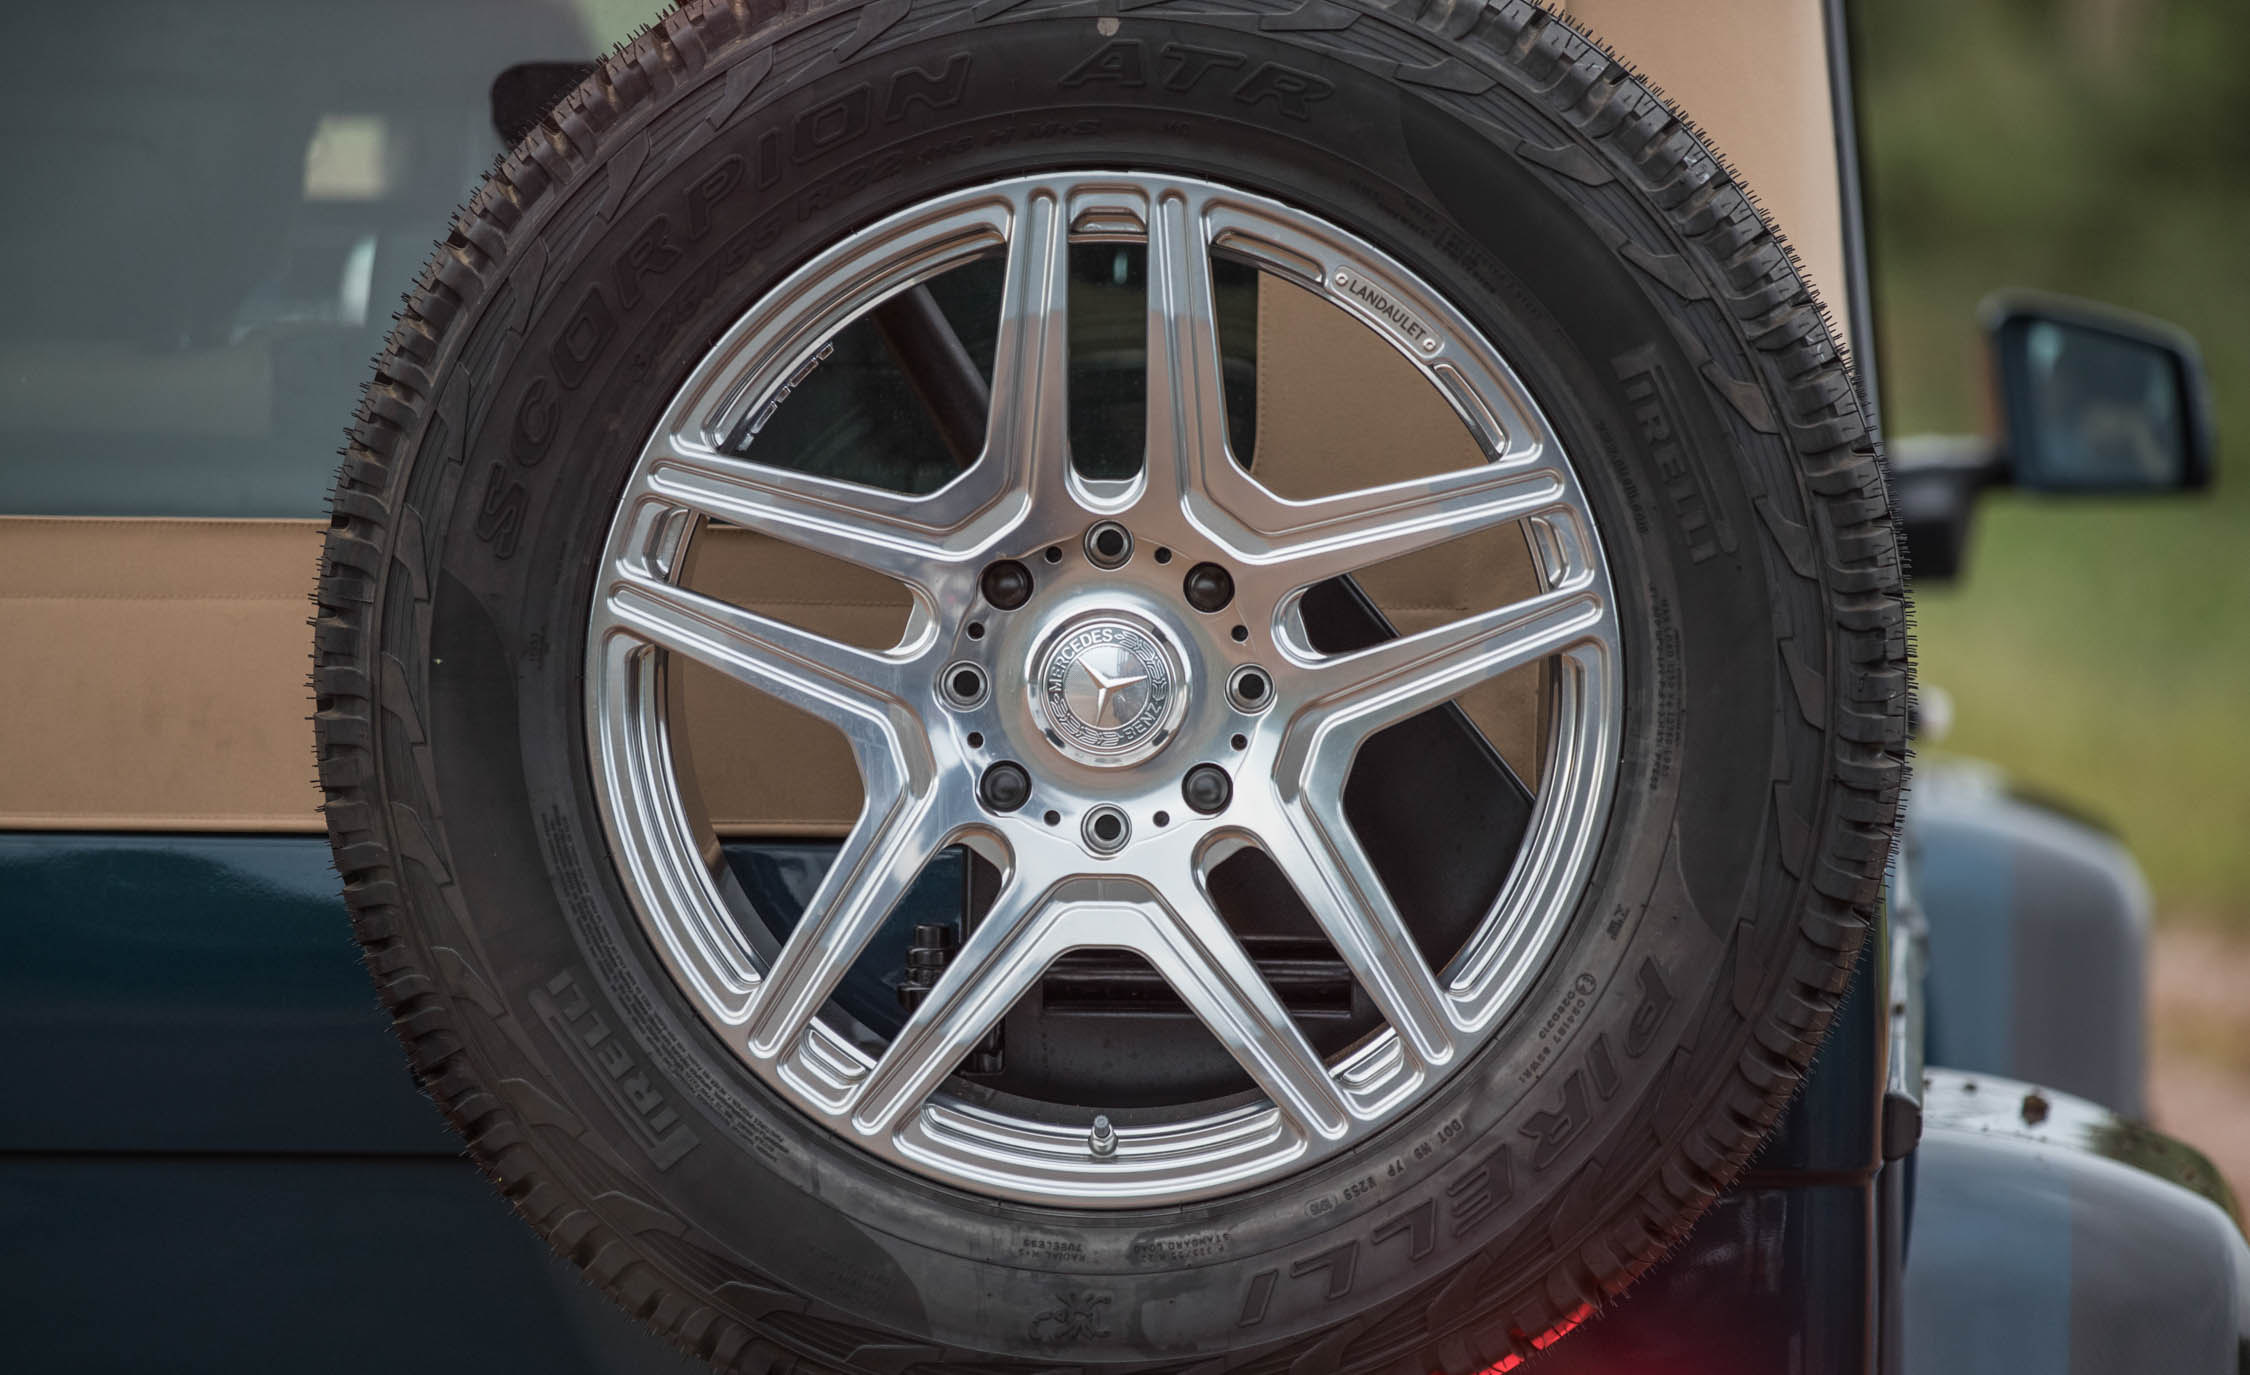 2018 Mercedes Maybach G650 Landaulet Exterior View Rear Spare Mounted Wheel (View 42 of 52)